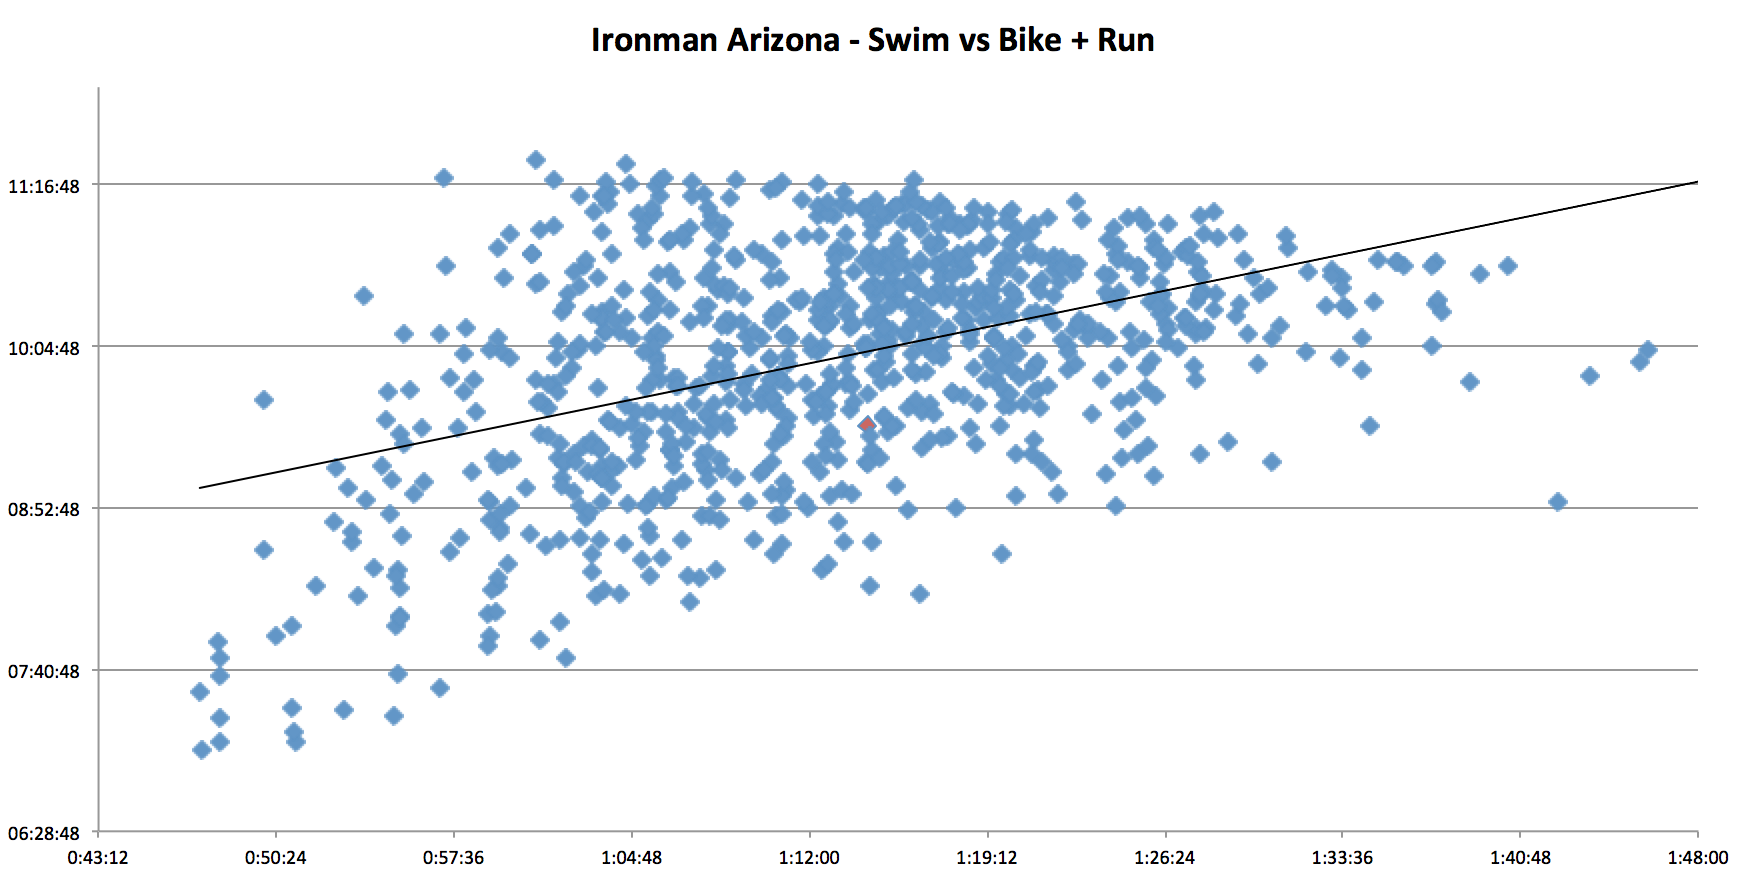 ironman_arizona_swim_s_bike_plus_run